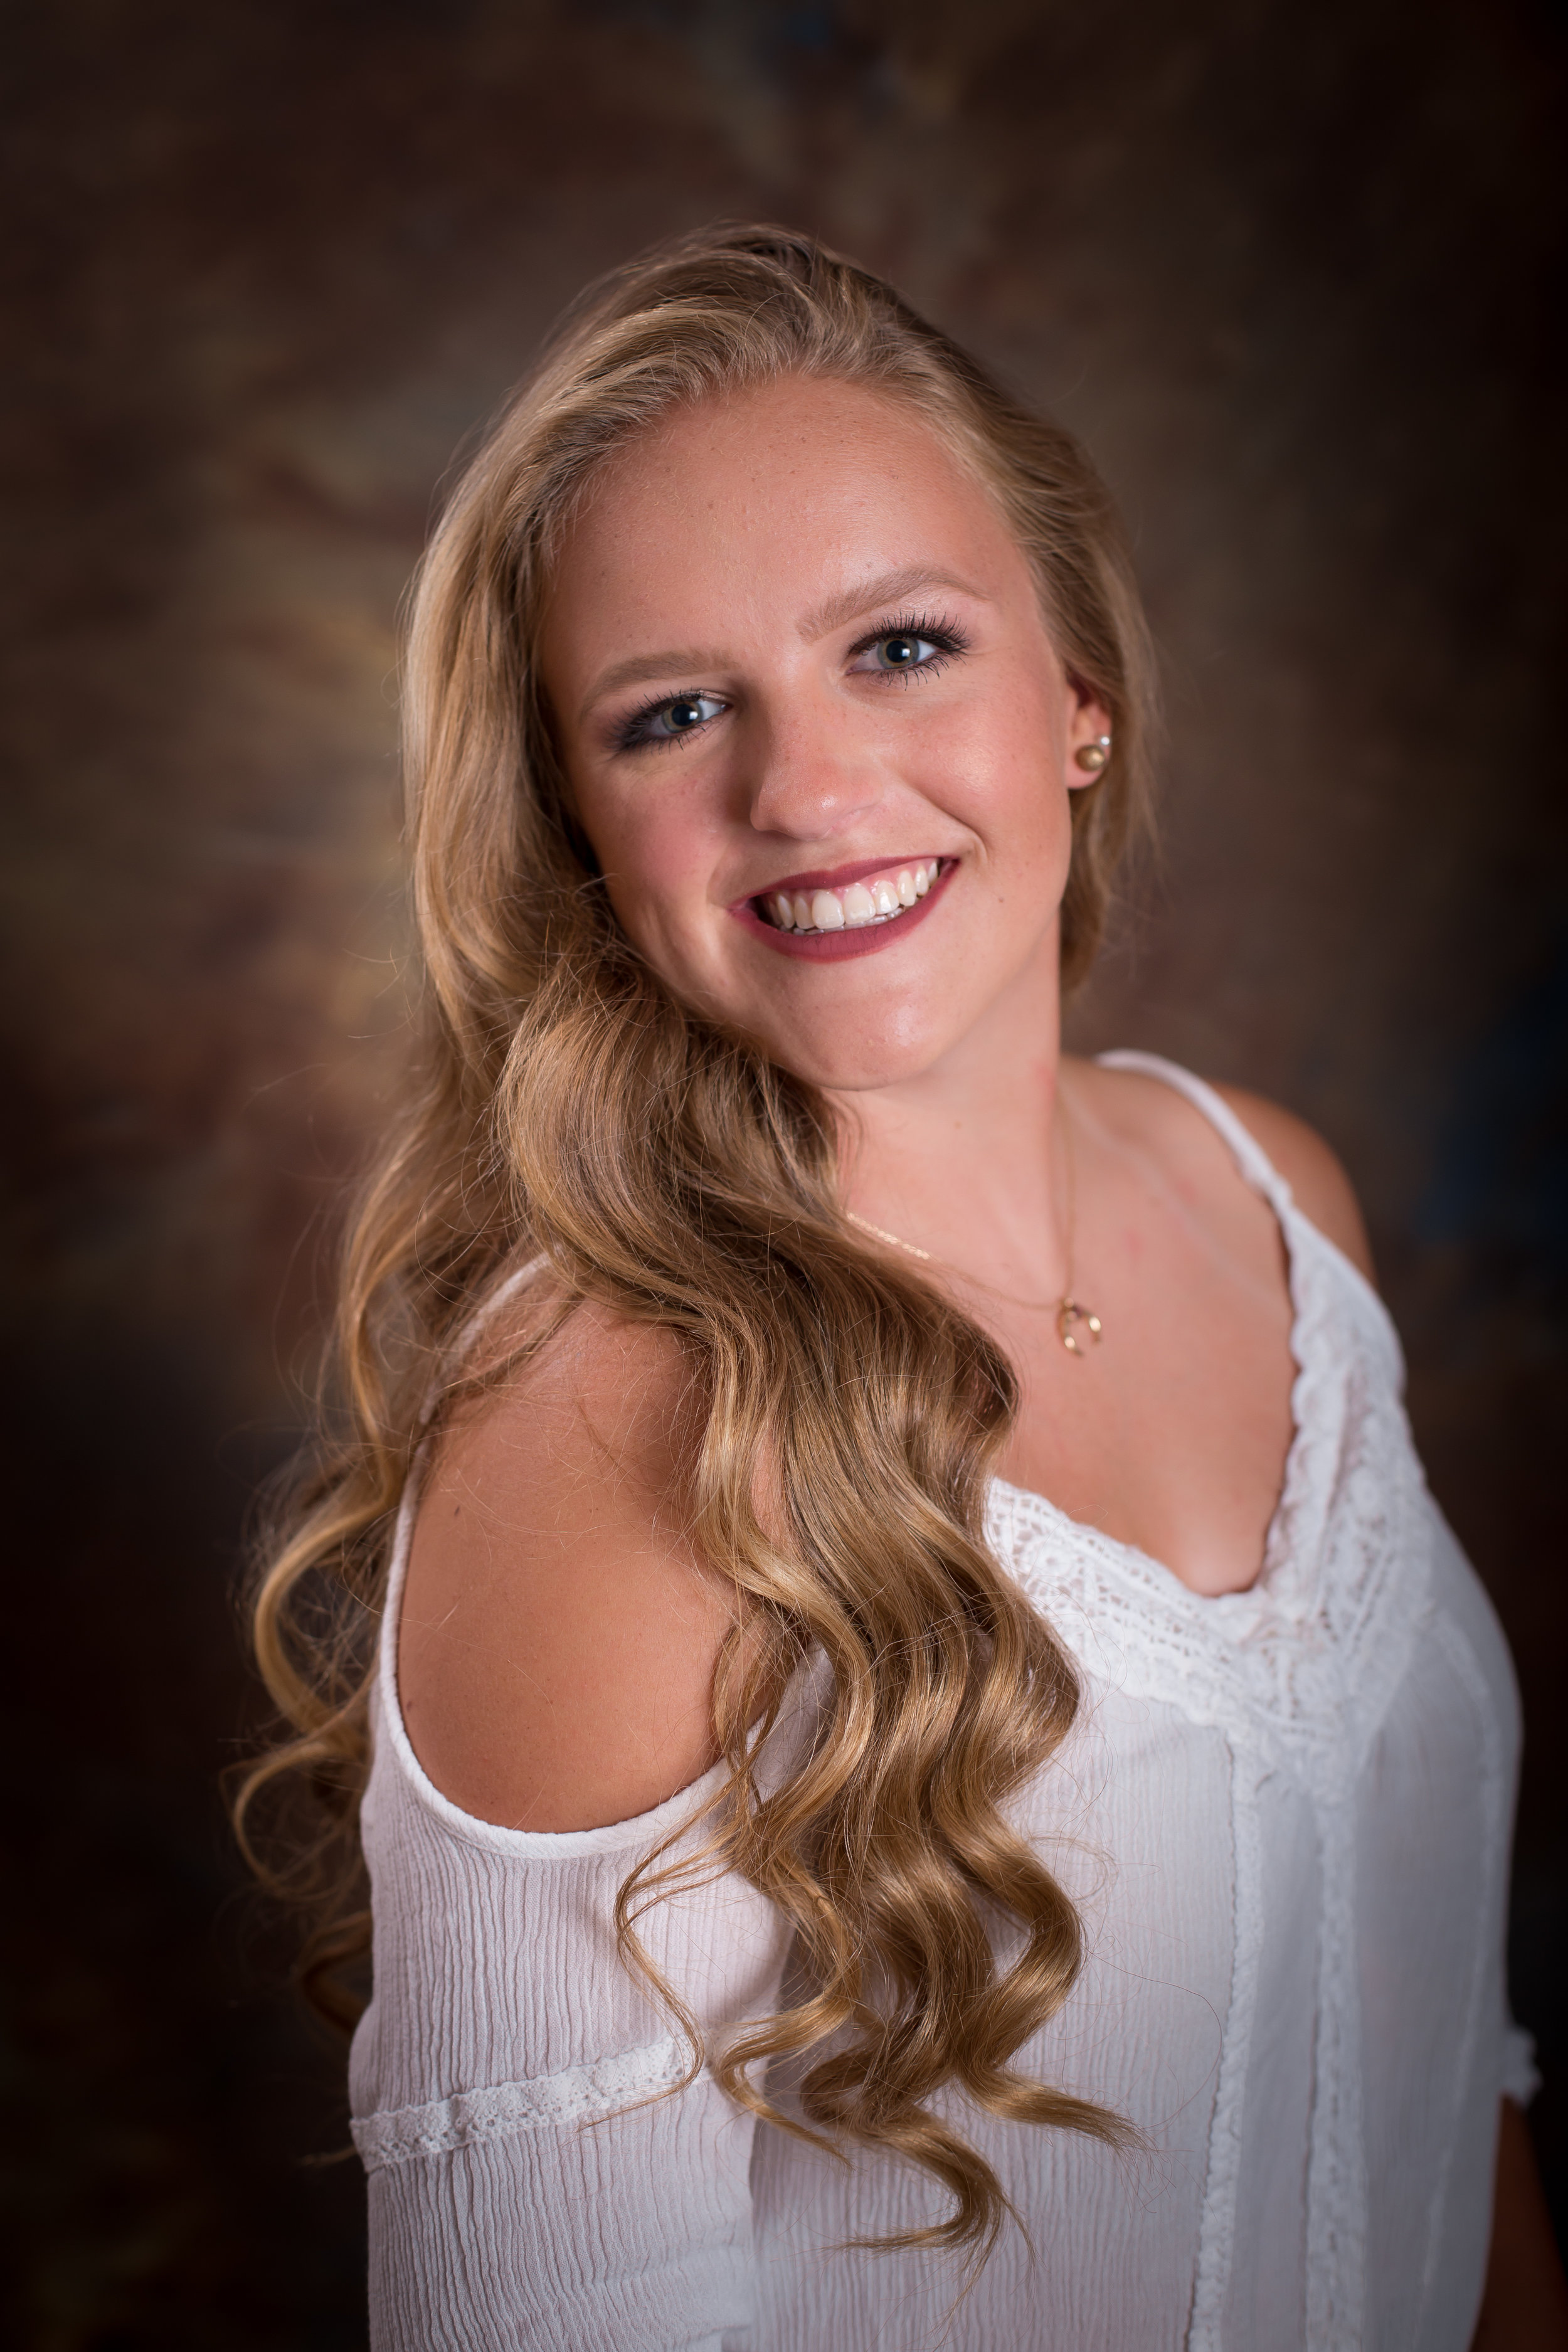 High School Senior Portrait Sessions - Senior Portrait Session: $275.00 plus tax, multiple outfit changes, $50.00 print credit and 10% discount on prints.These session generally last around 1 hour.